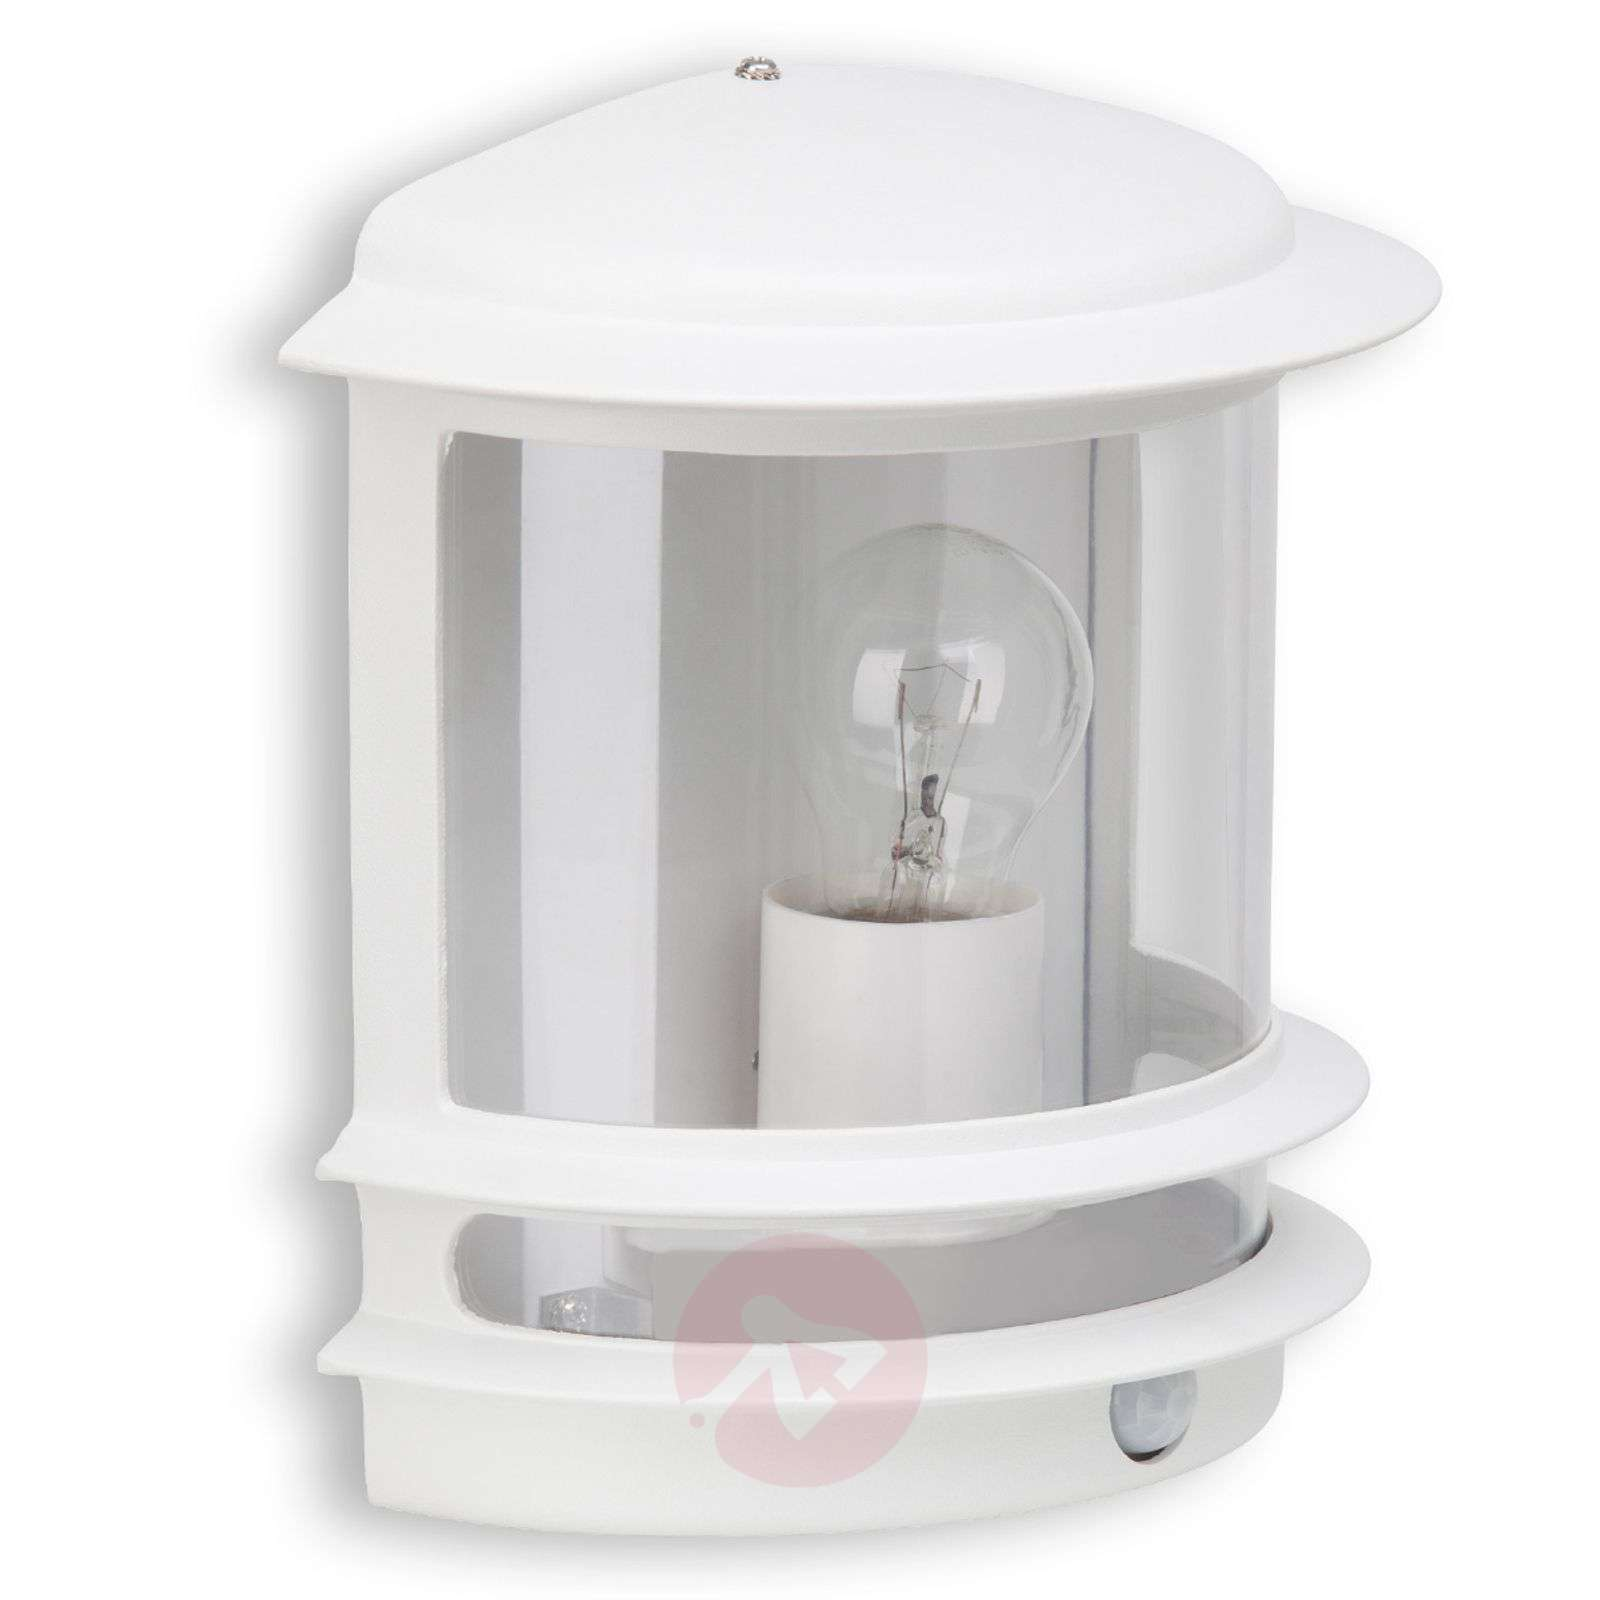 Hollywood outdoor wall light w/ motion detector-1507120-03